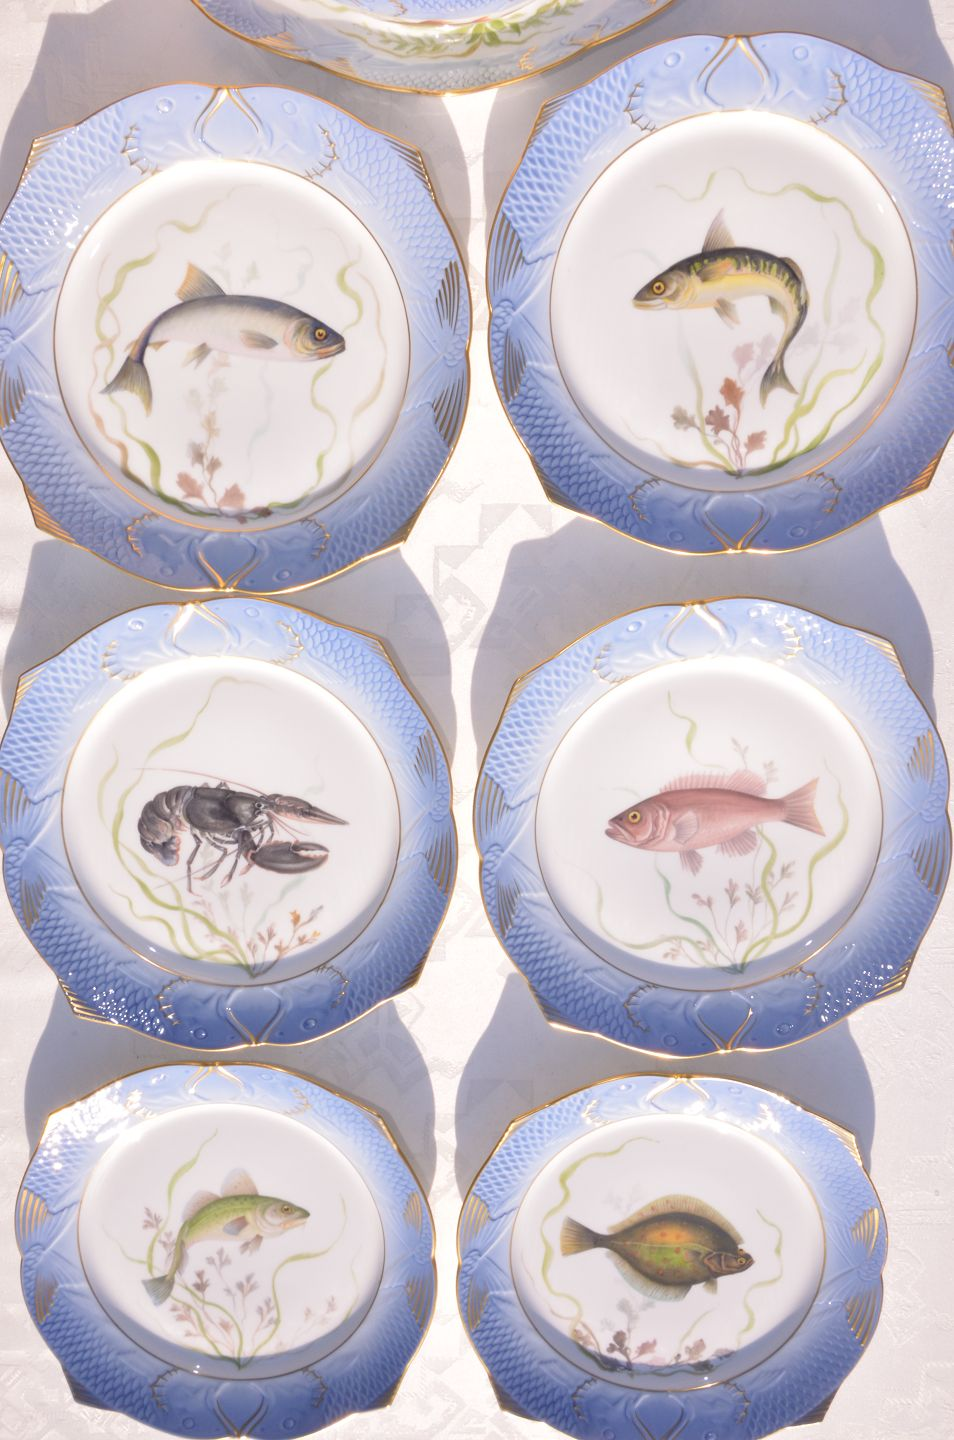 Royal Copenhagen Geschirr Worldantique Fish Service By Royal Copenhagen Fish Plates